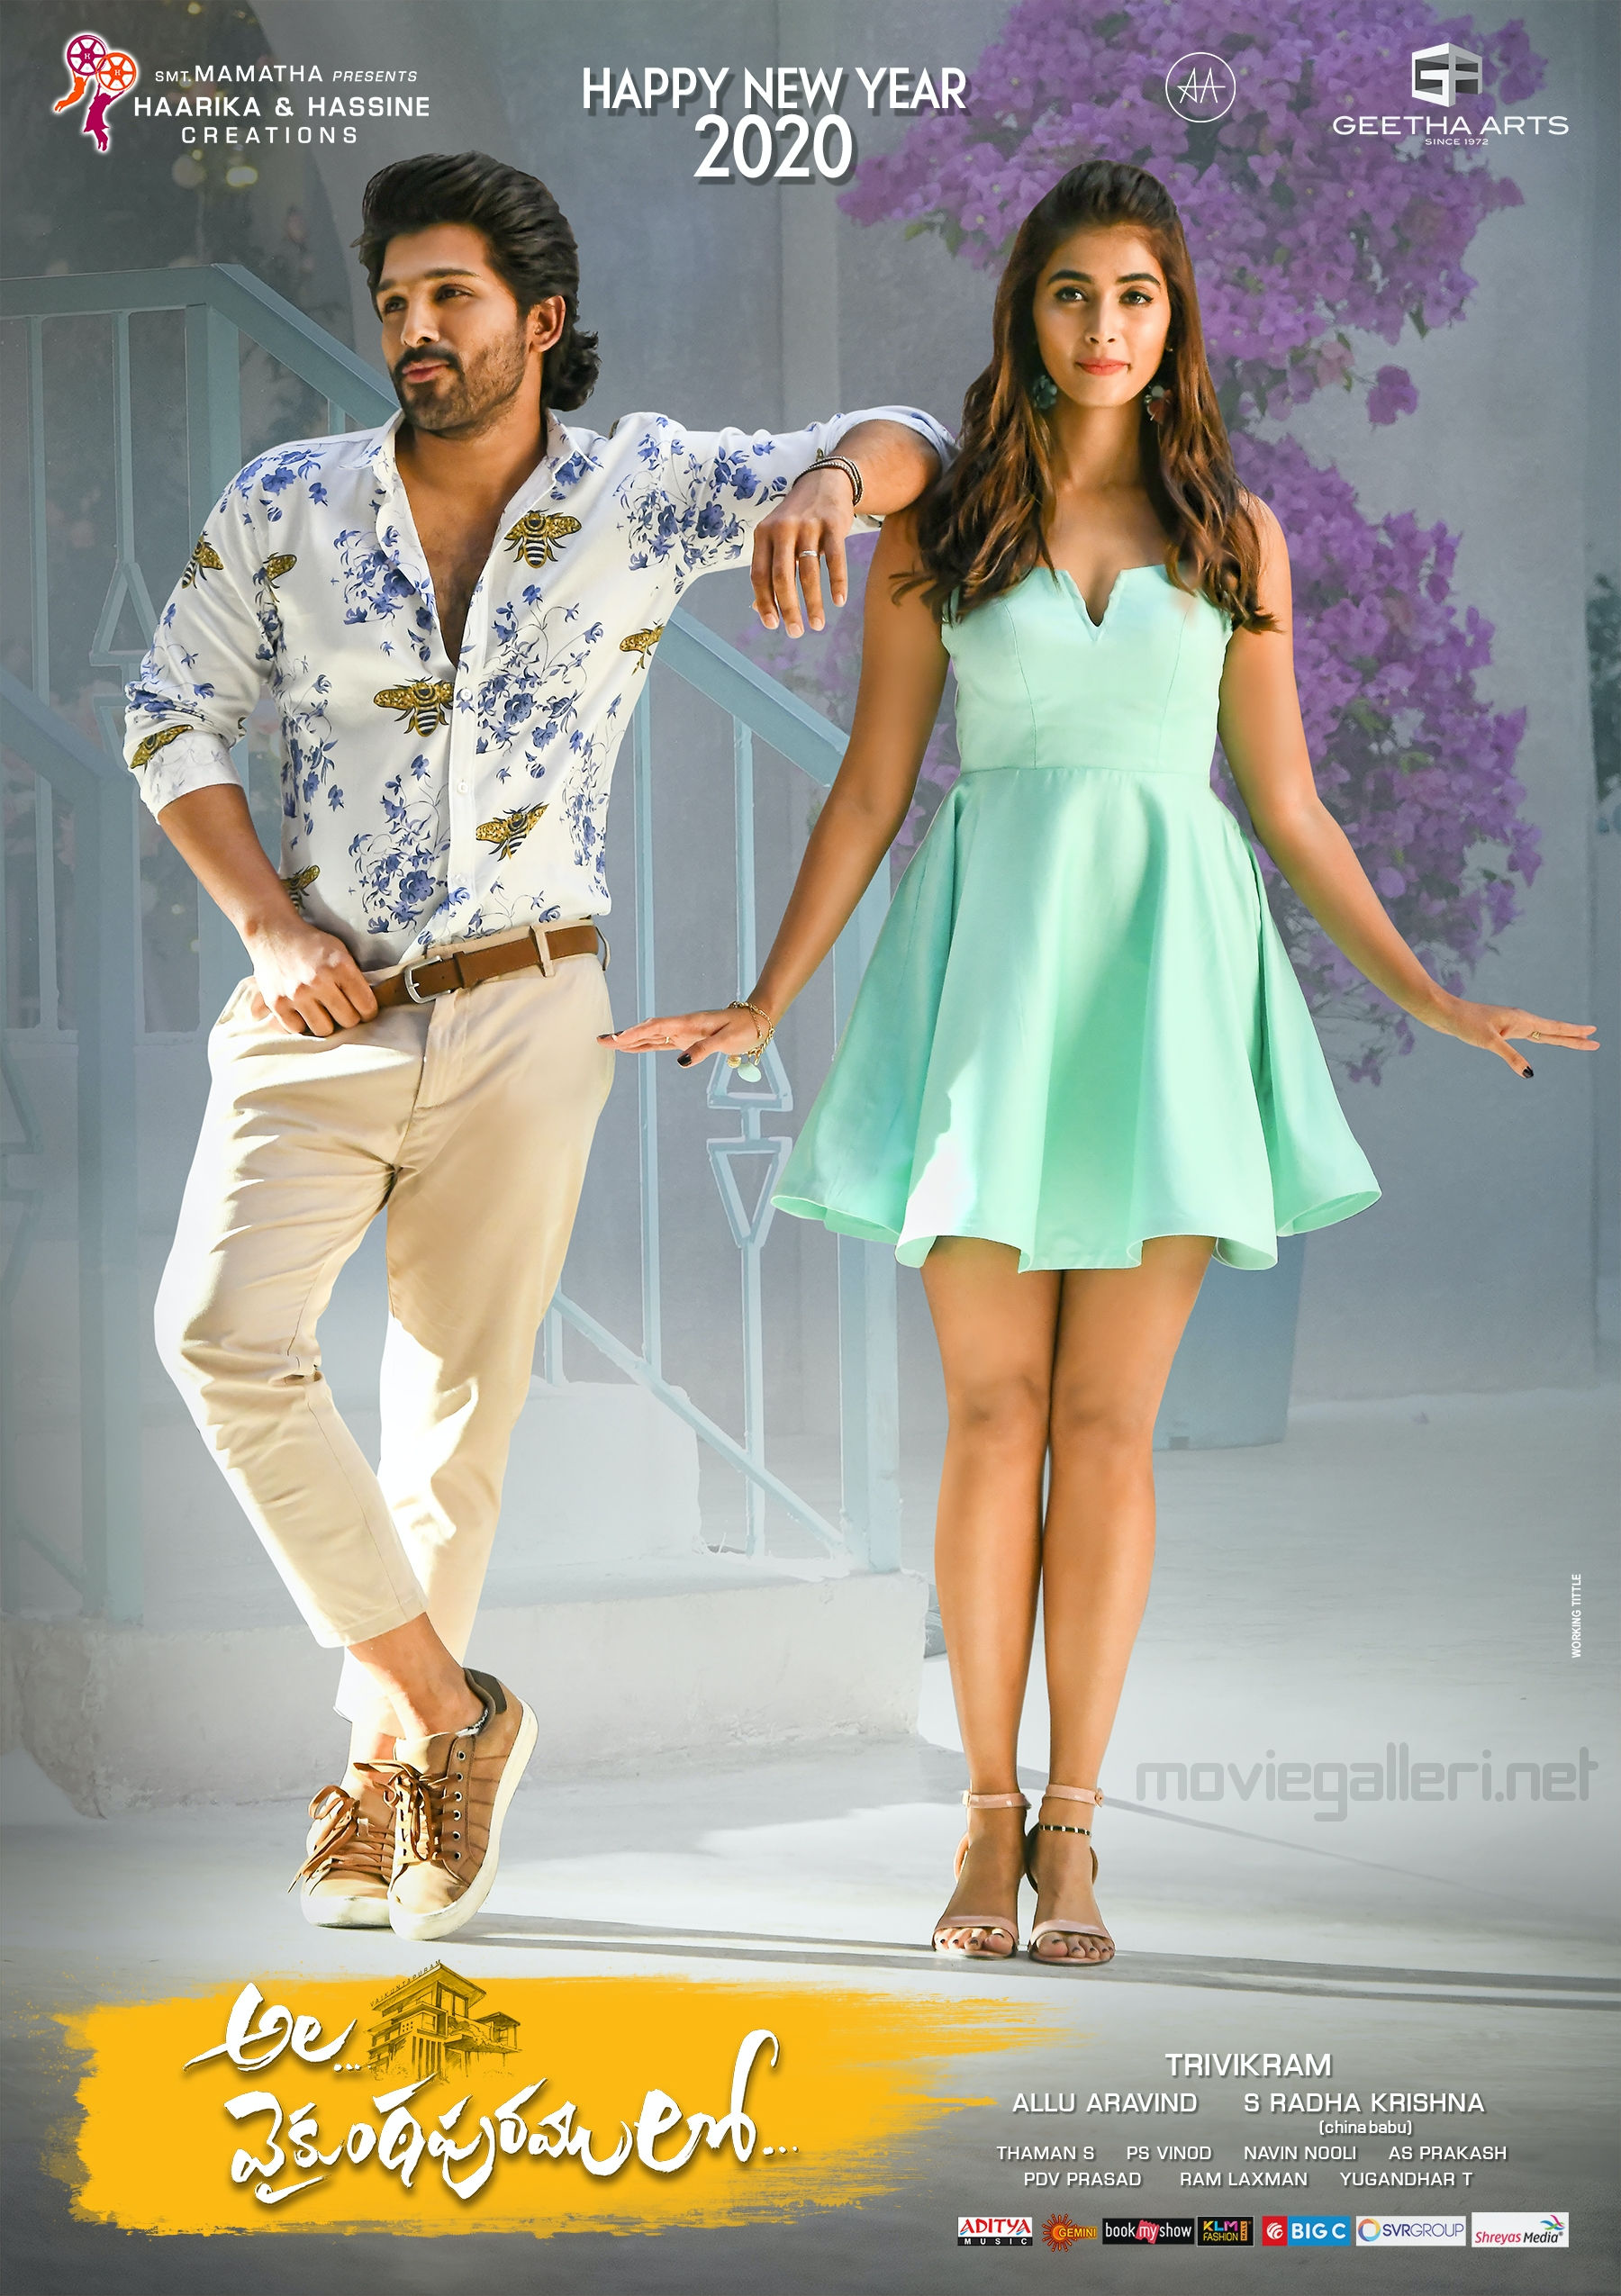 Allu Arjun Pooja Hegde Ala Vaikunthapurramuloo Movie New Year 2020 Wishes Poster HD